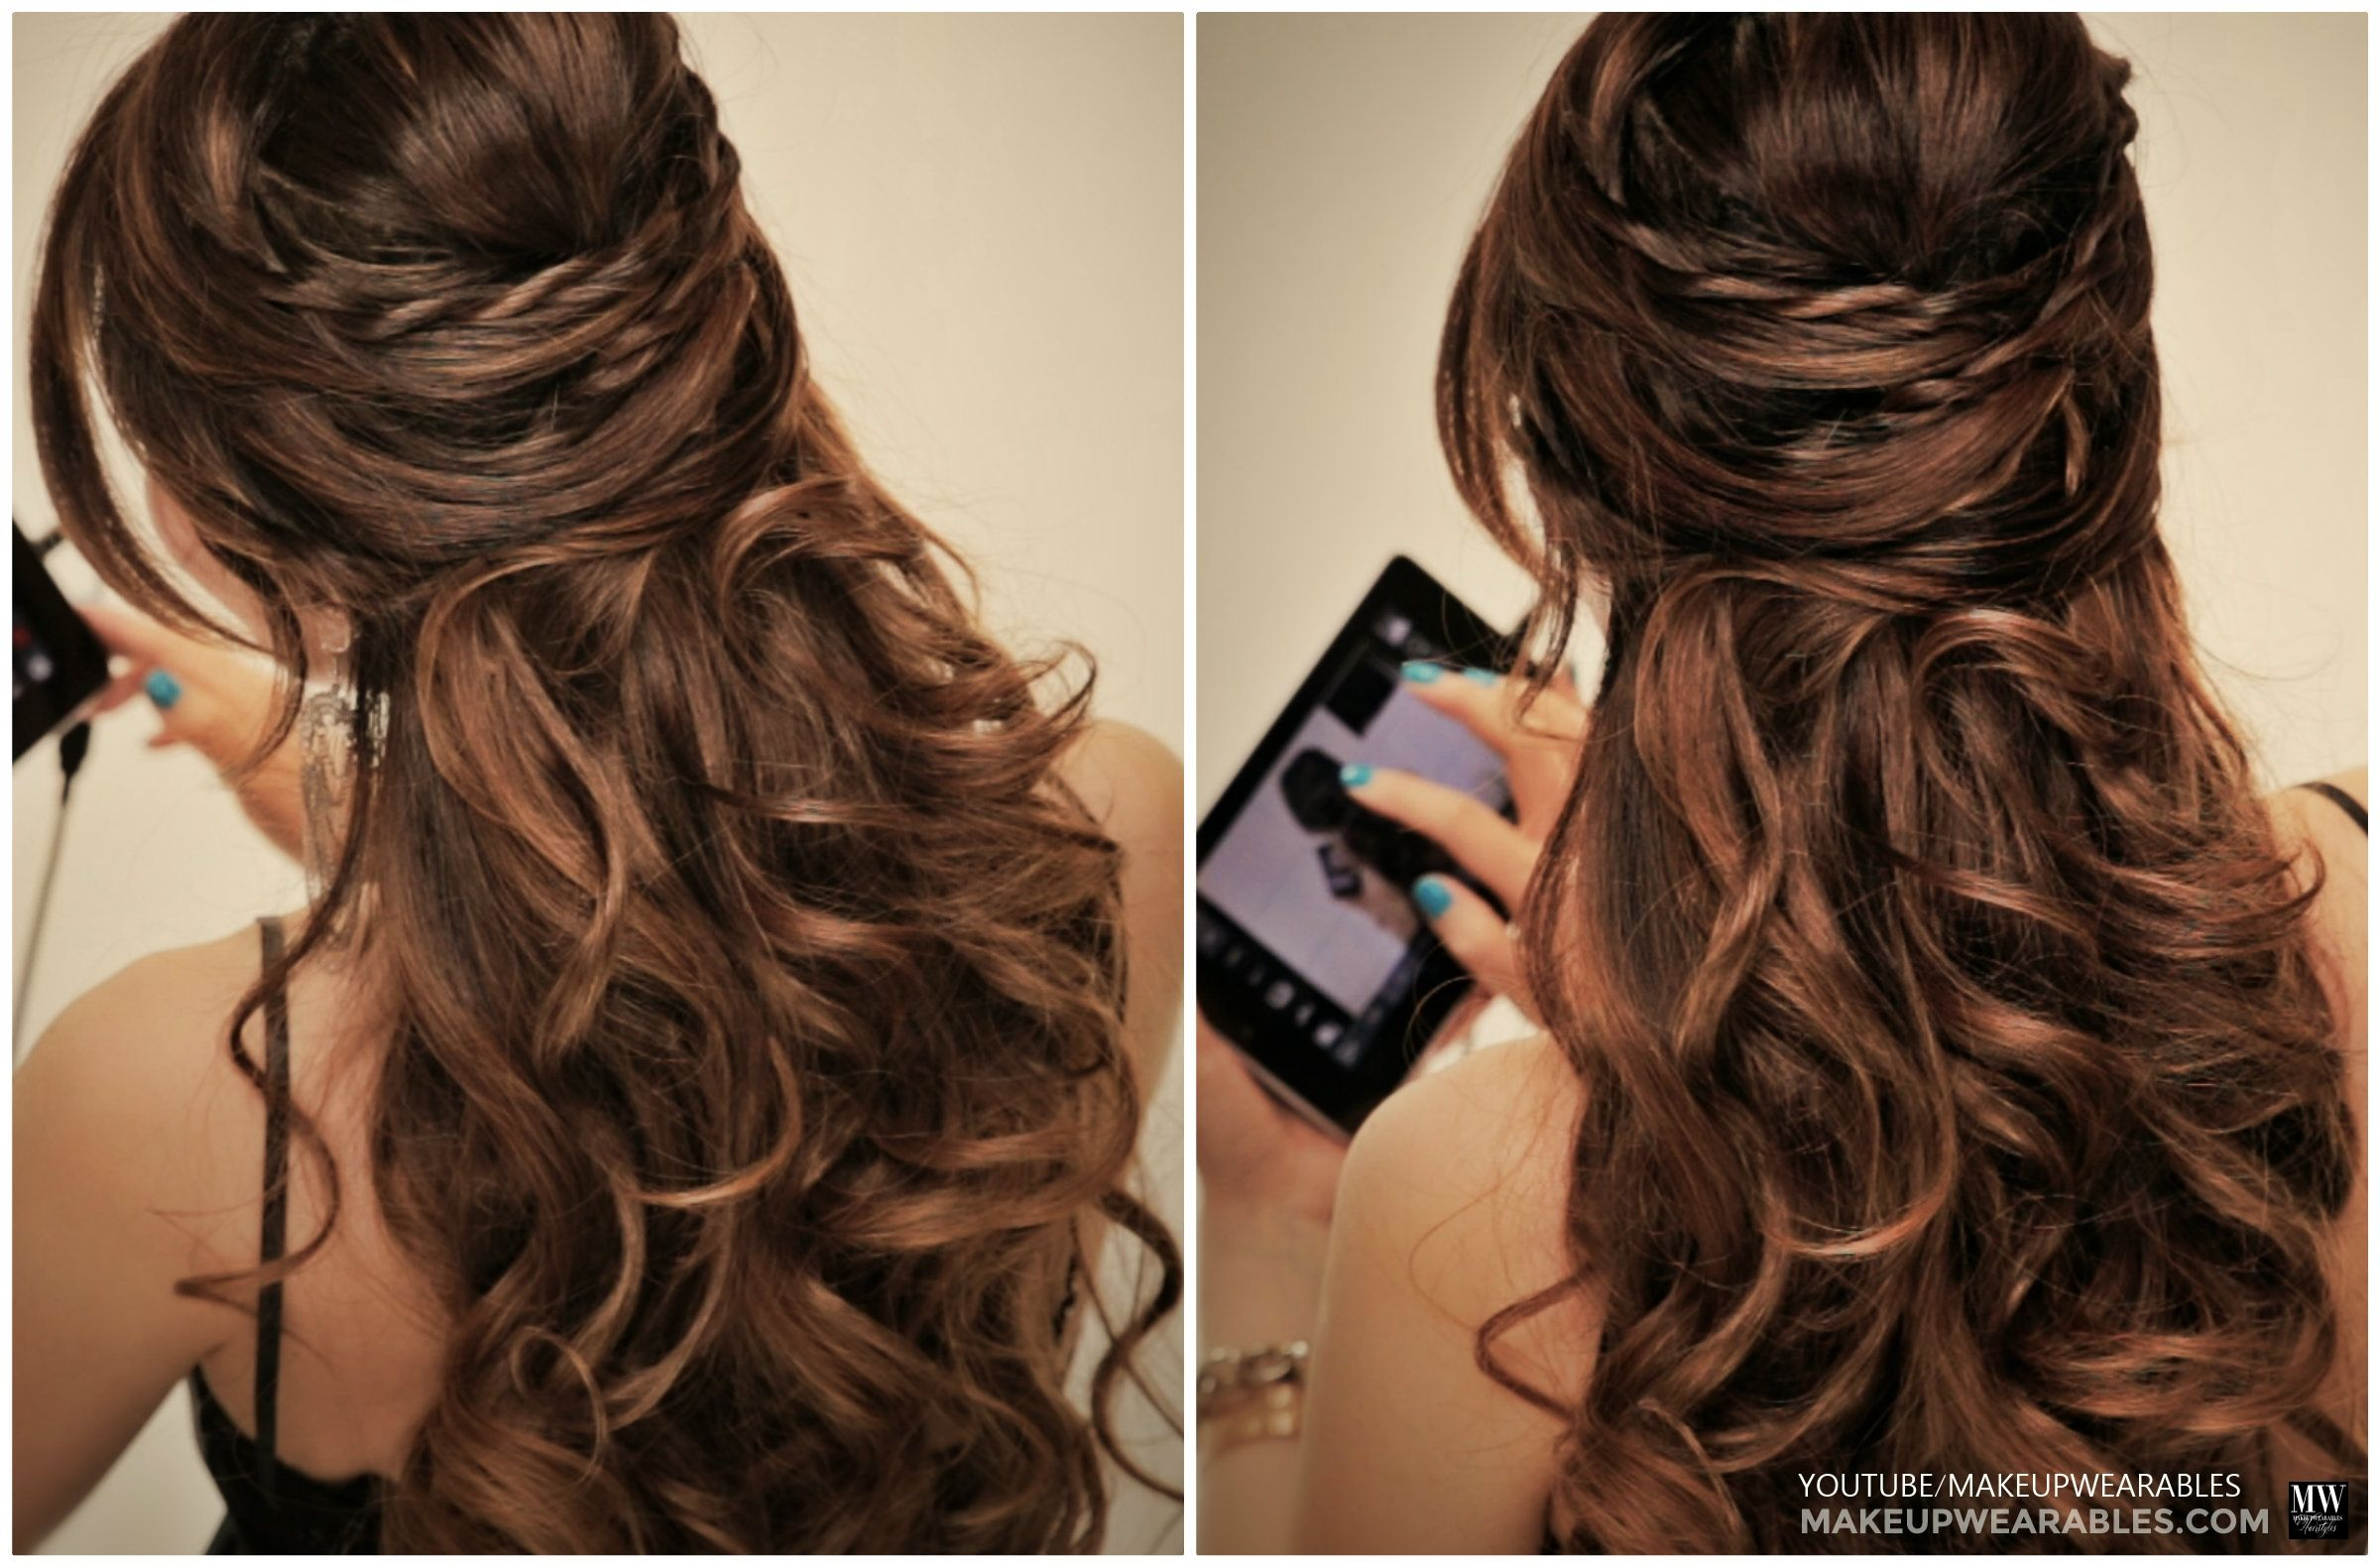 Superb 1000 Images About Hair On Pinterest Easy Hairstyles Buns And Hairstyle Inspiration Daily Dogsangcom